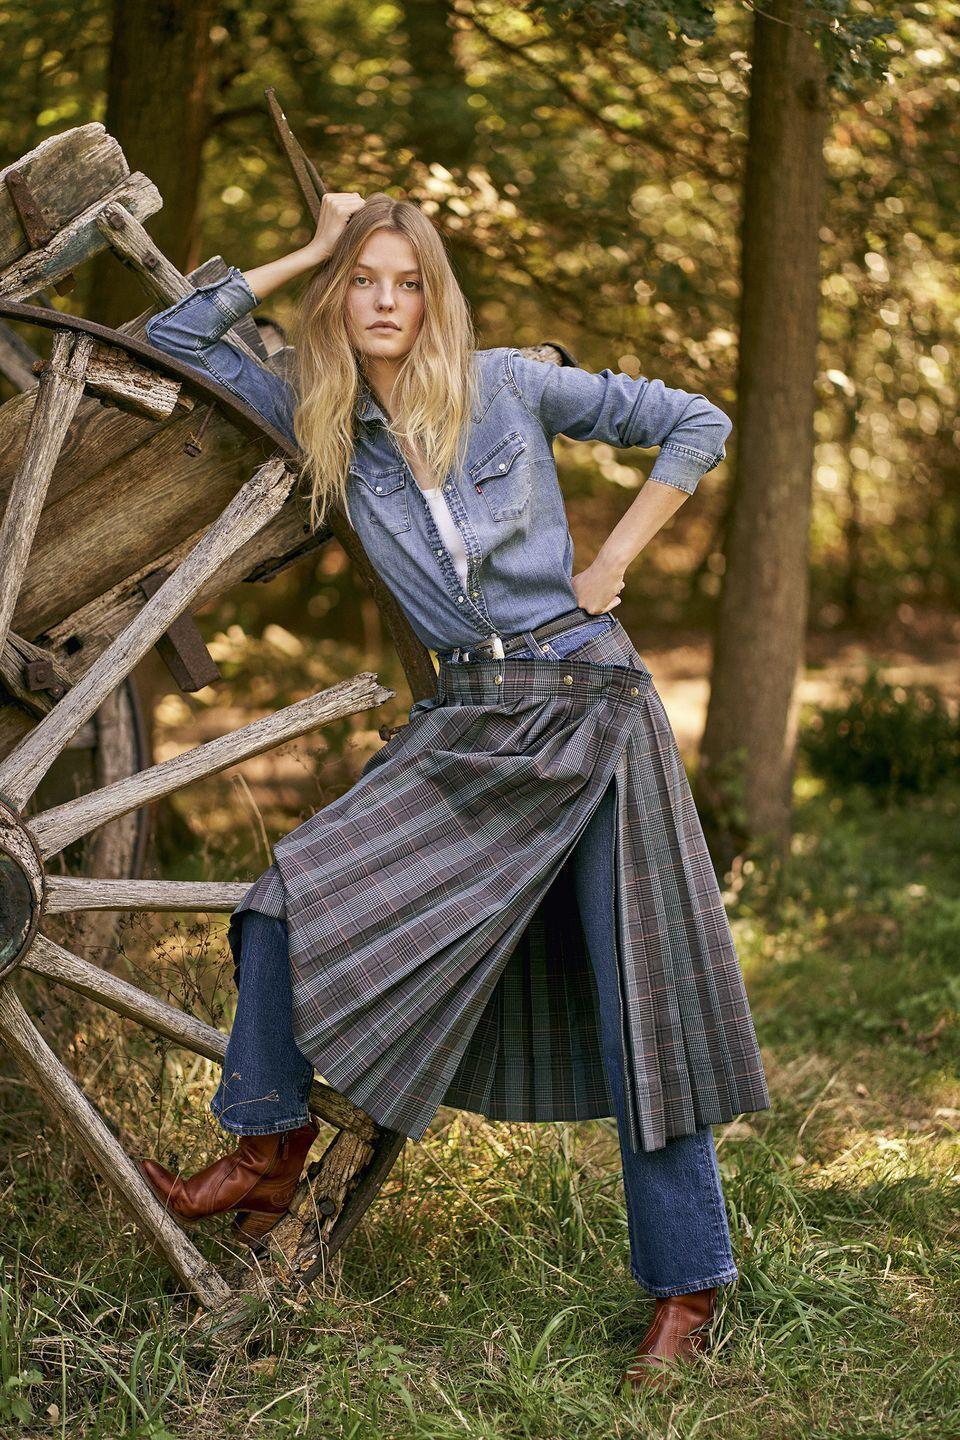 <p>Camicia di denim con taschini (80 euro) e jeans bootcut (125 euro), tutto <strong>Levi's Red Tab</strong>; canotta a costine di <em>Supima Cotton</em>, <strong>Intimissimi</strong> (9,90 euro), gonna a pieghe checked di misto lana, <strong>Acne Studios</strong> (530 euro), cintura di pelle <strong>Kate Cate</strong> (145 euro), booties di pelle con motivi paisley <strong>Etro</strong> (795 euro).</p>